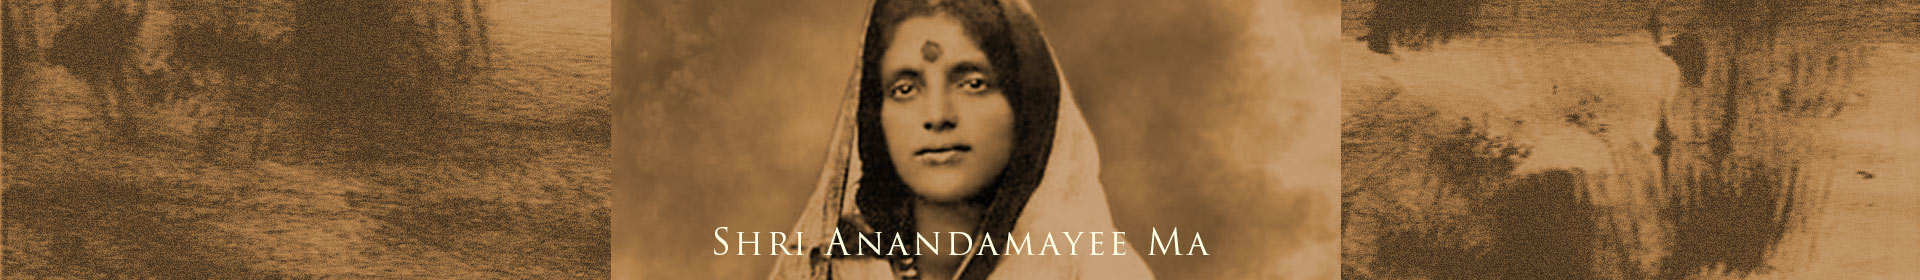 Dialogue with Shri Anandamayee Ma